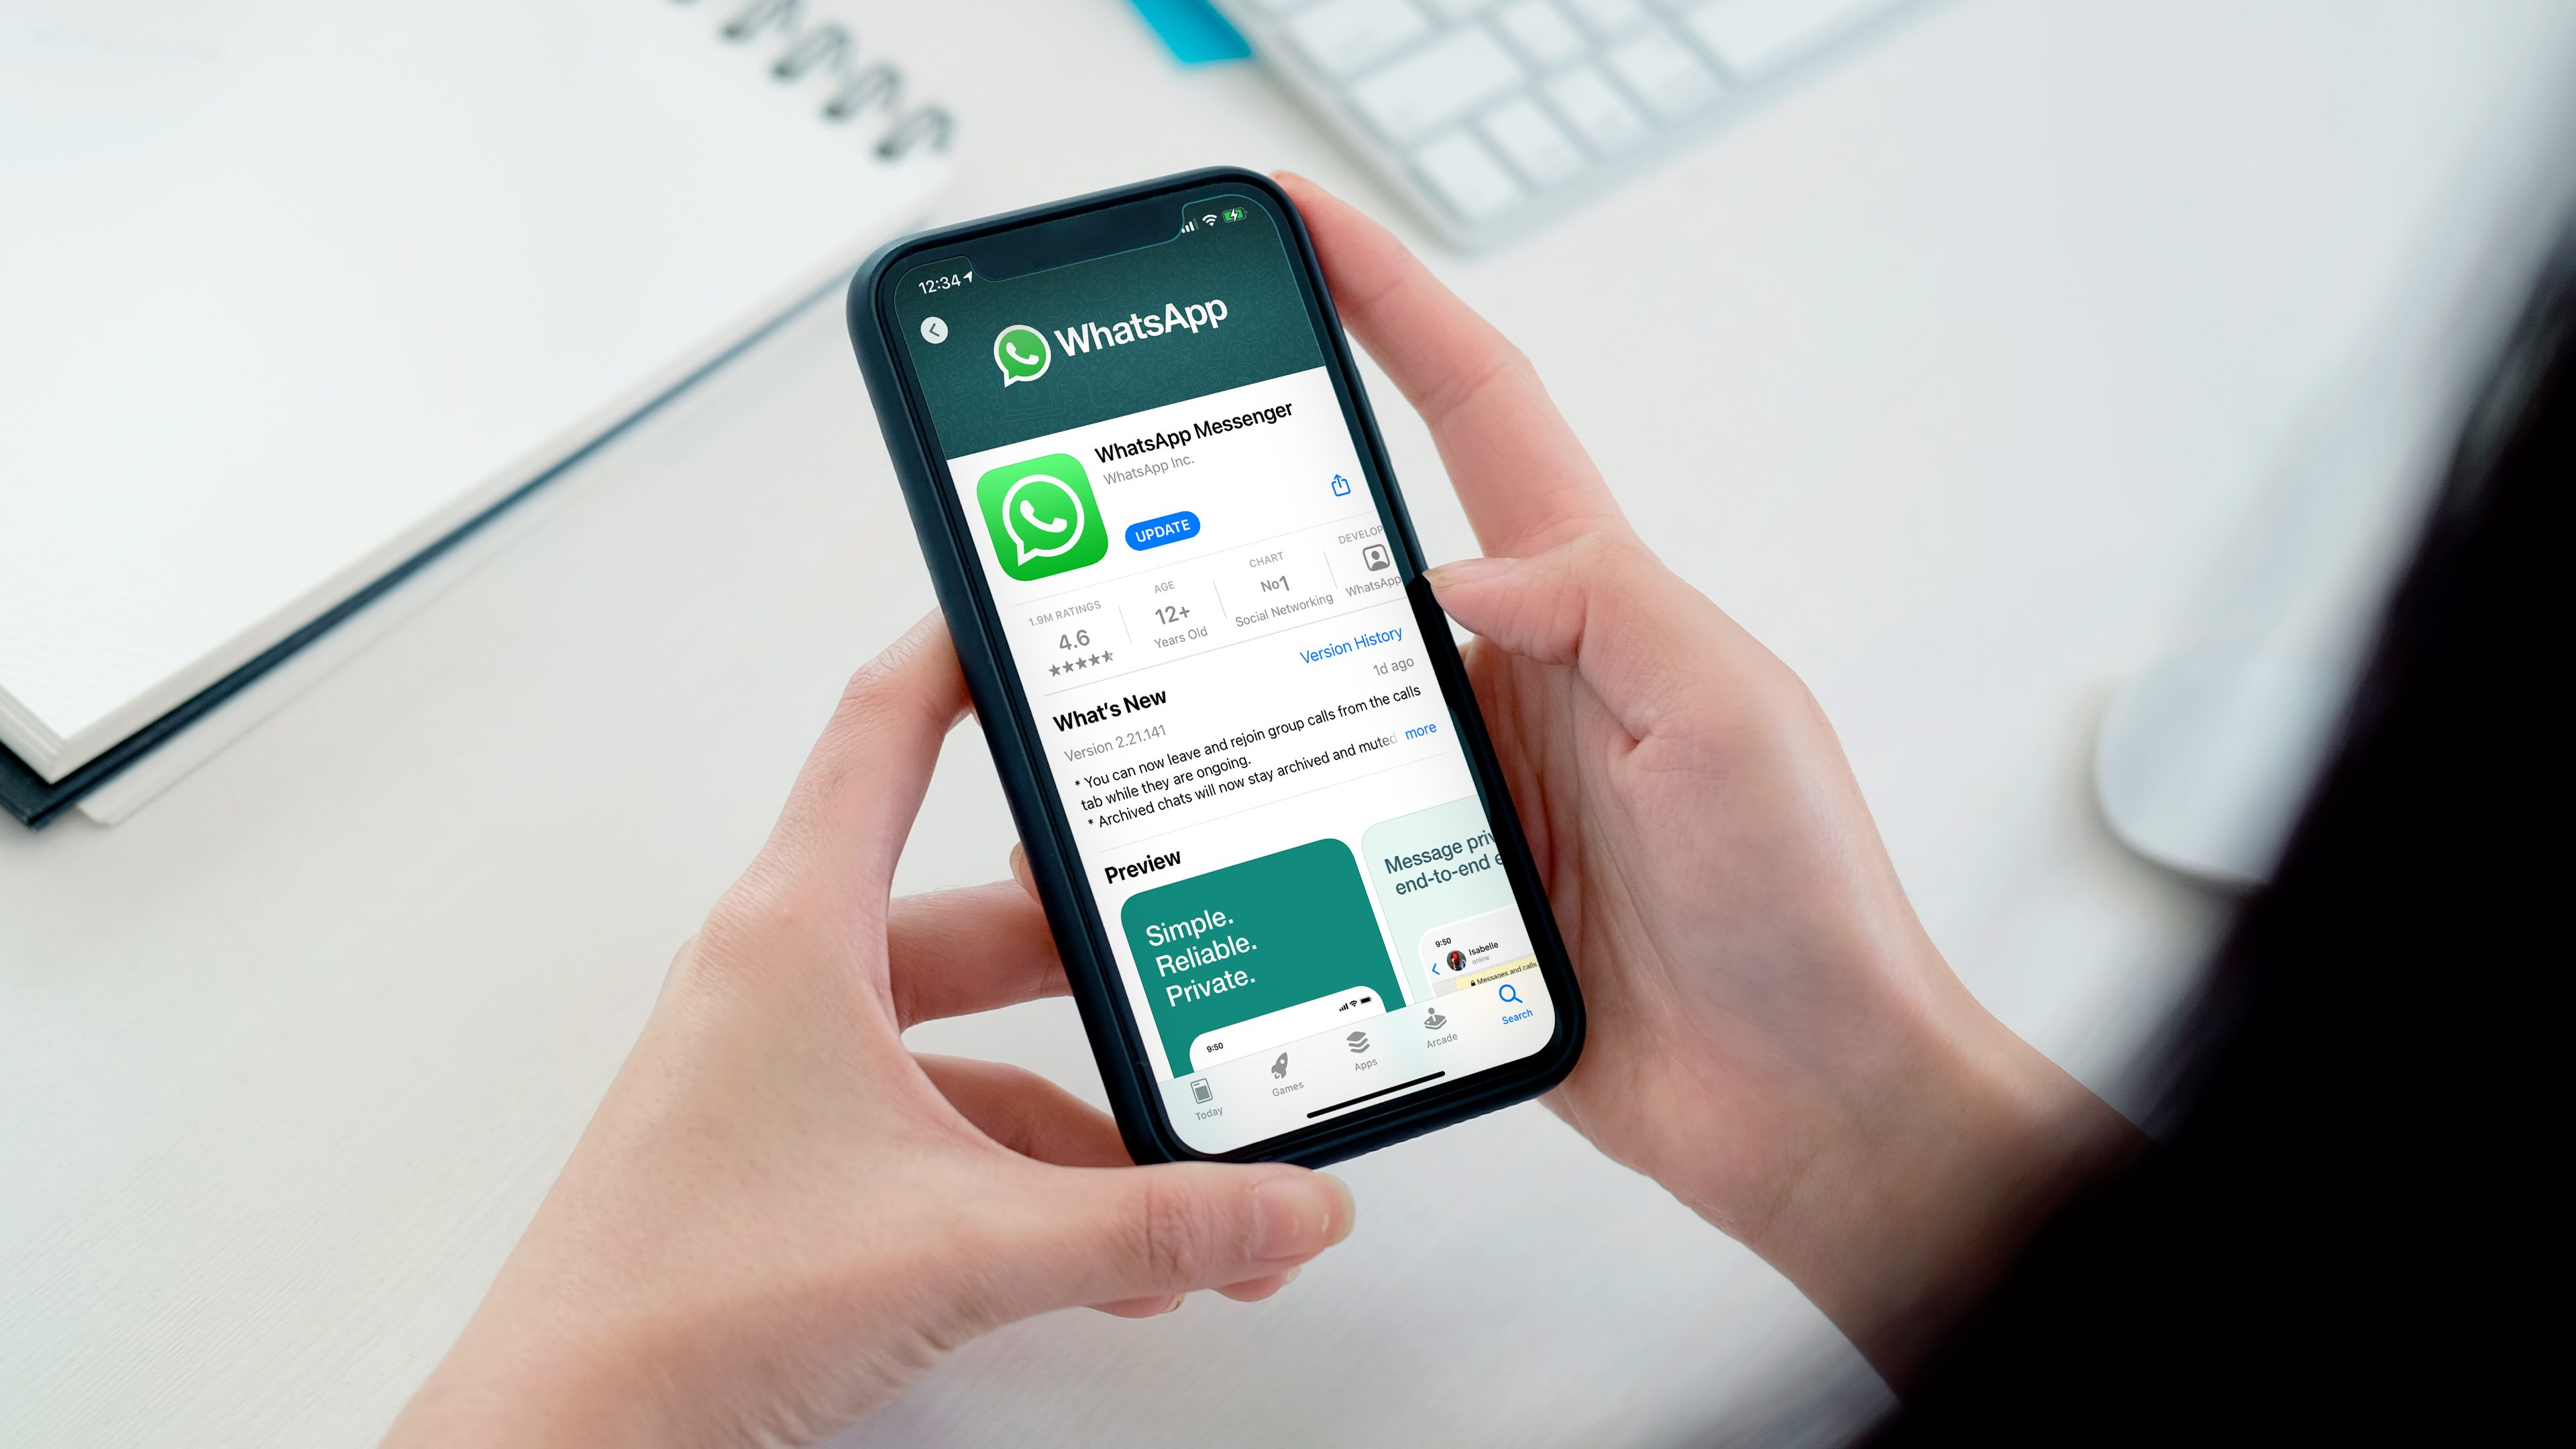 Advertising in WhatsApp: AI to analyze encrypted messages?